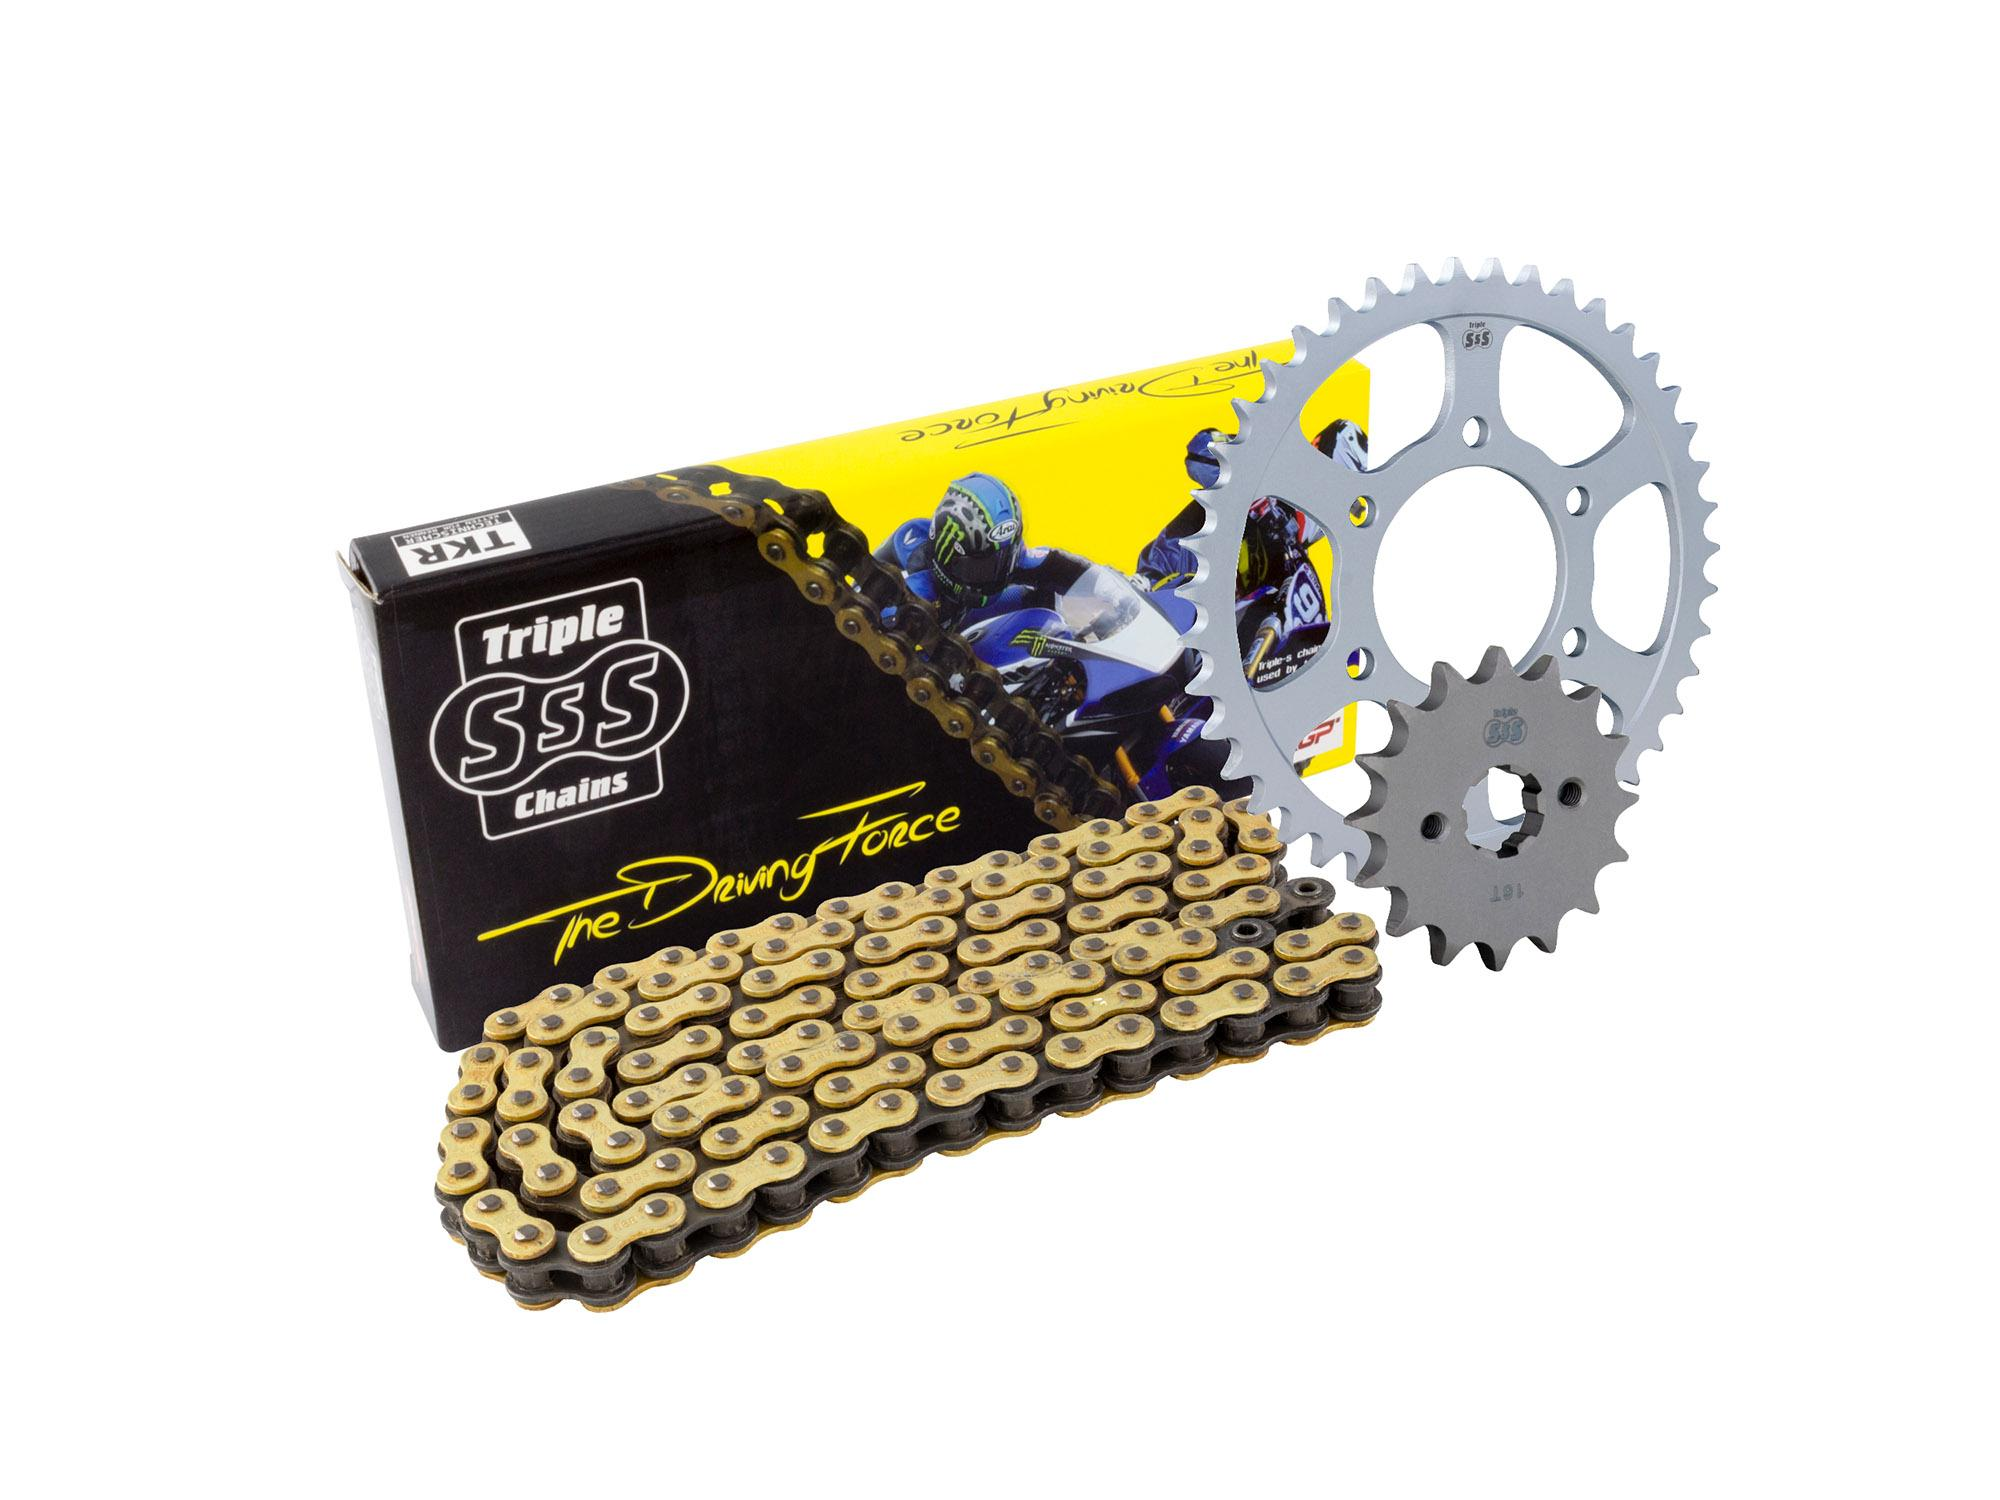 Kawasaki ZX14C 12> Chain & Sprocket Kit: 17T Front, 42T Rear, HD O-Ring Gold Chain 530H 116 Link